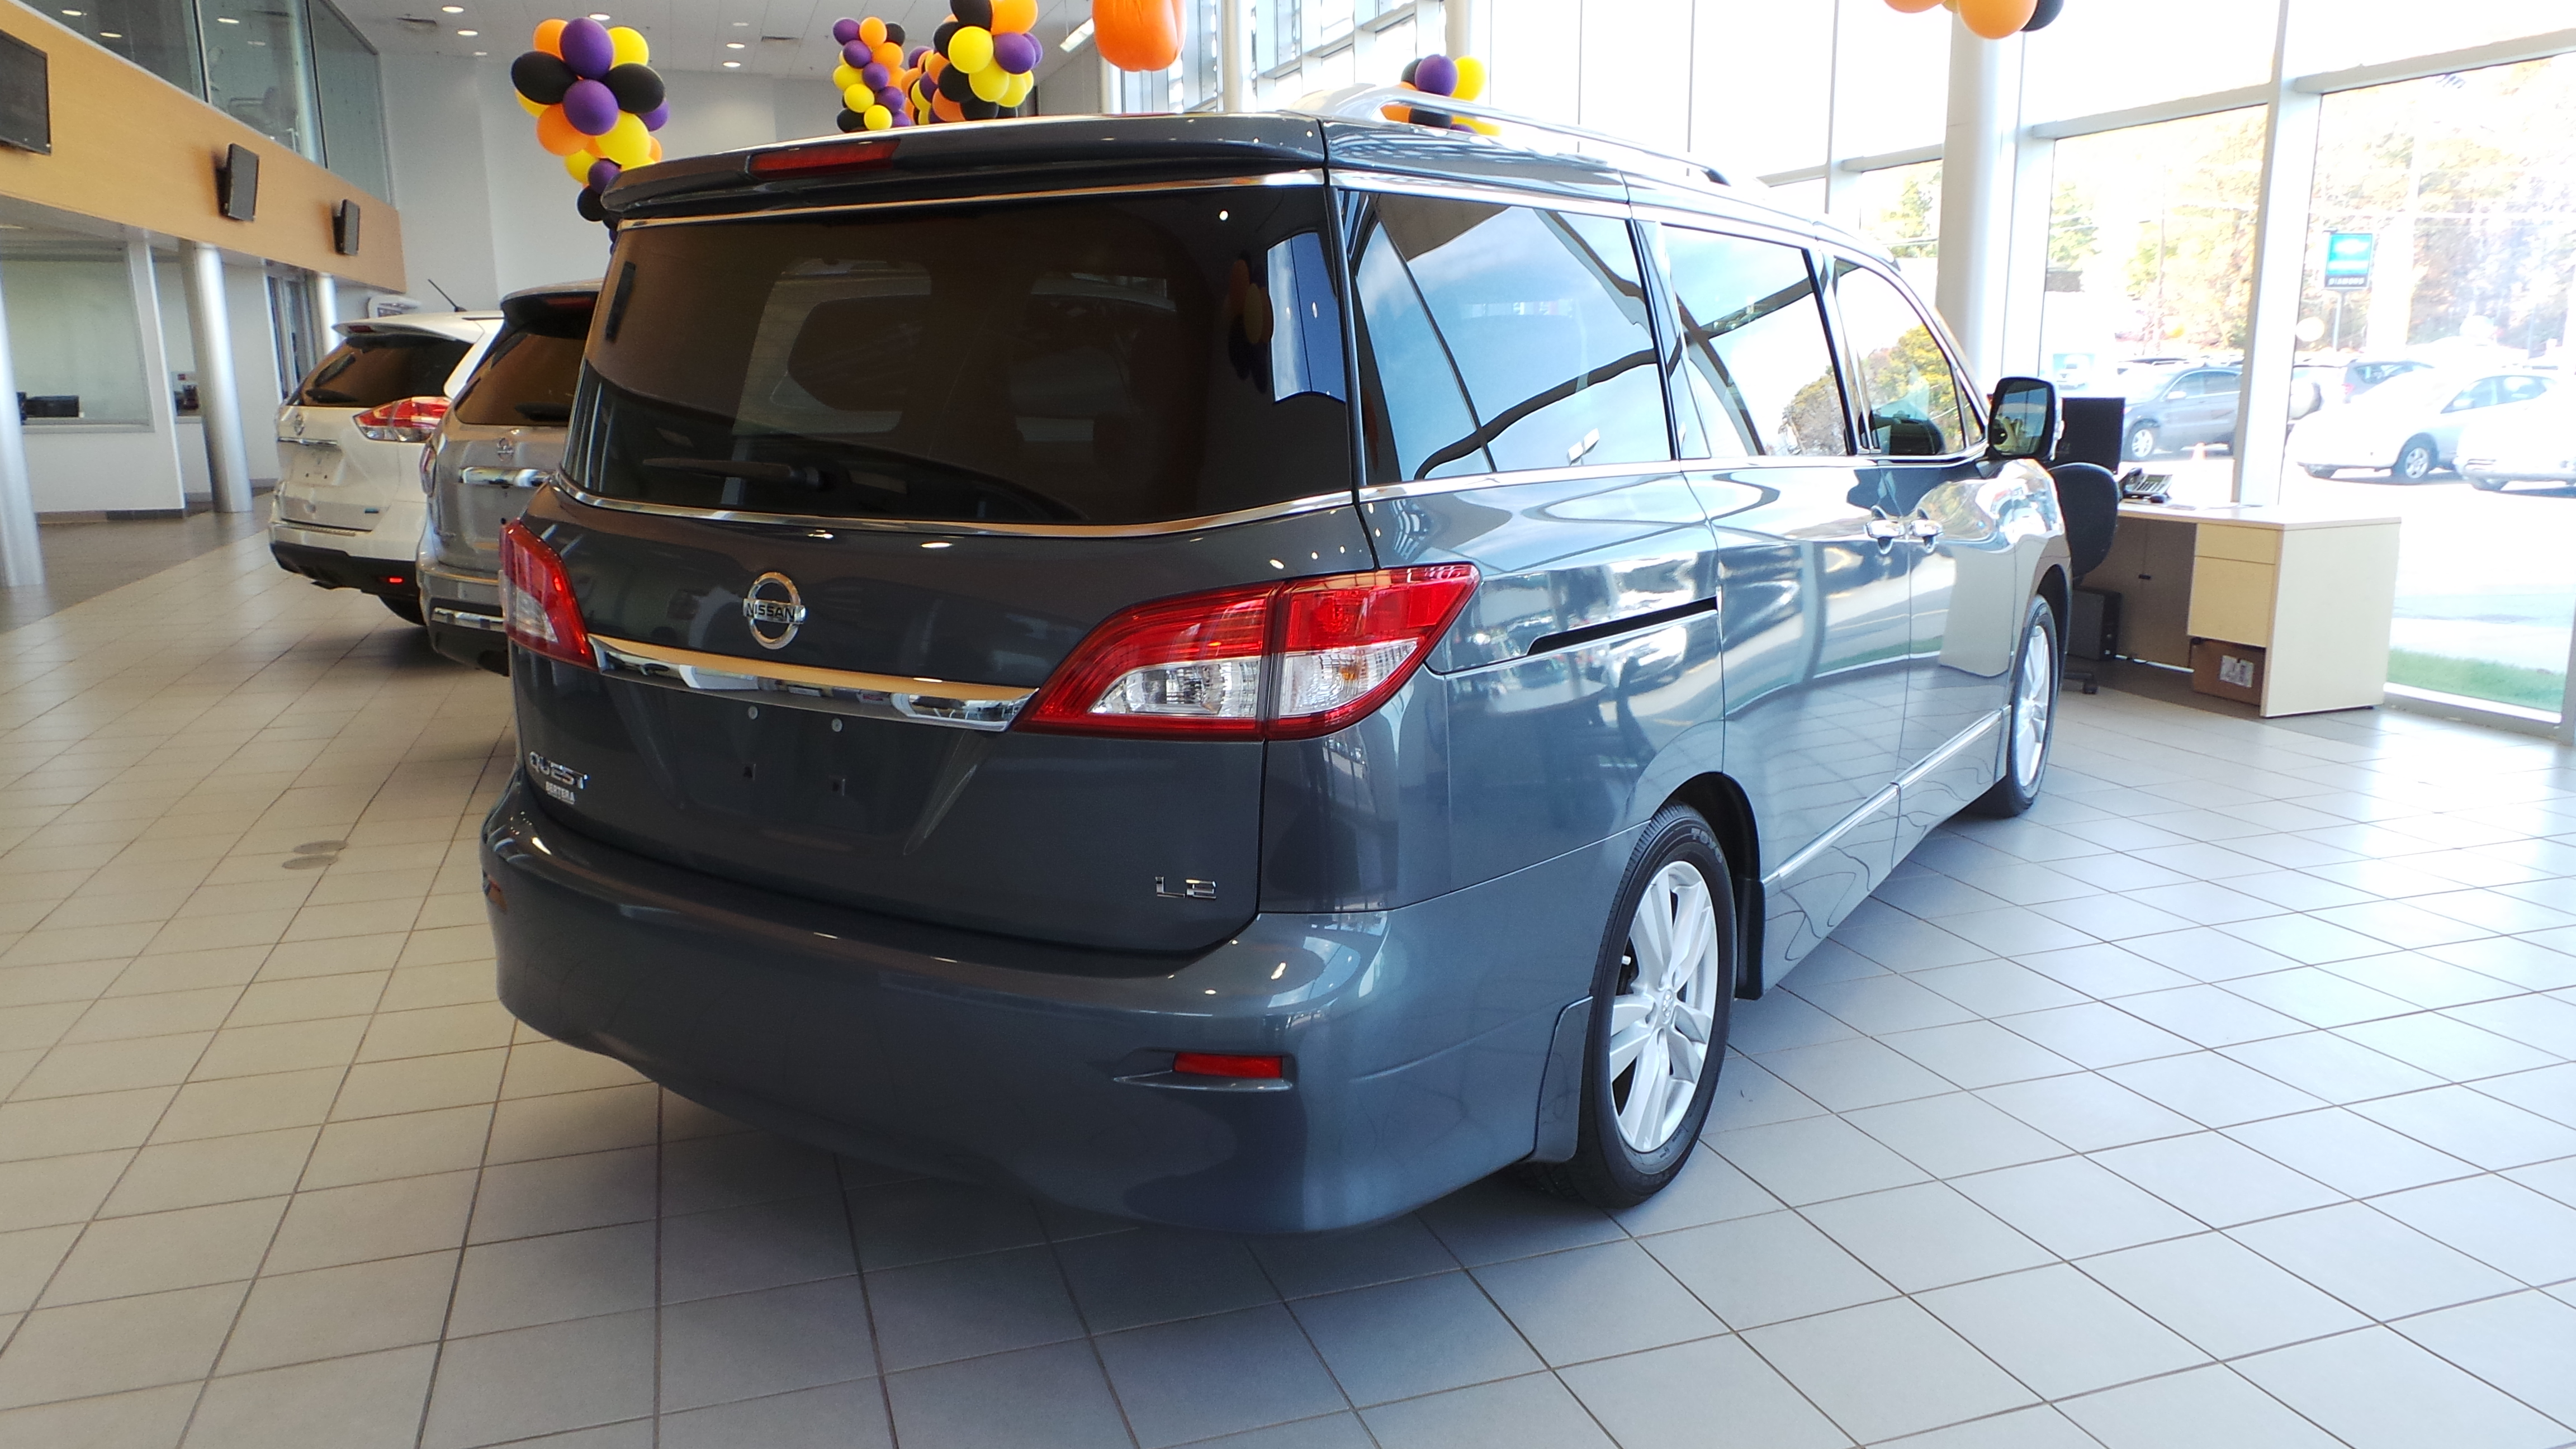 dealers hazelwood new is bays in a bommarito nissan available dealer and ma service several at